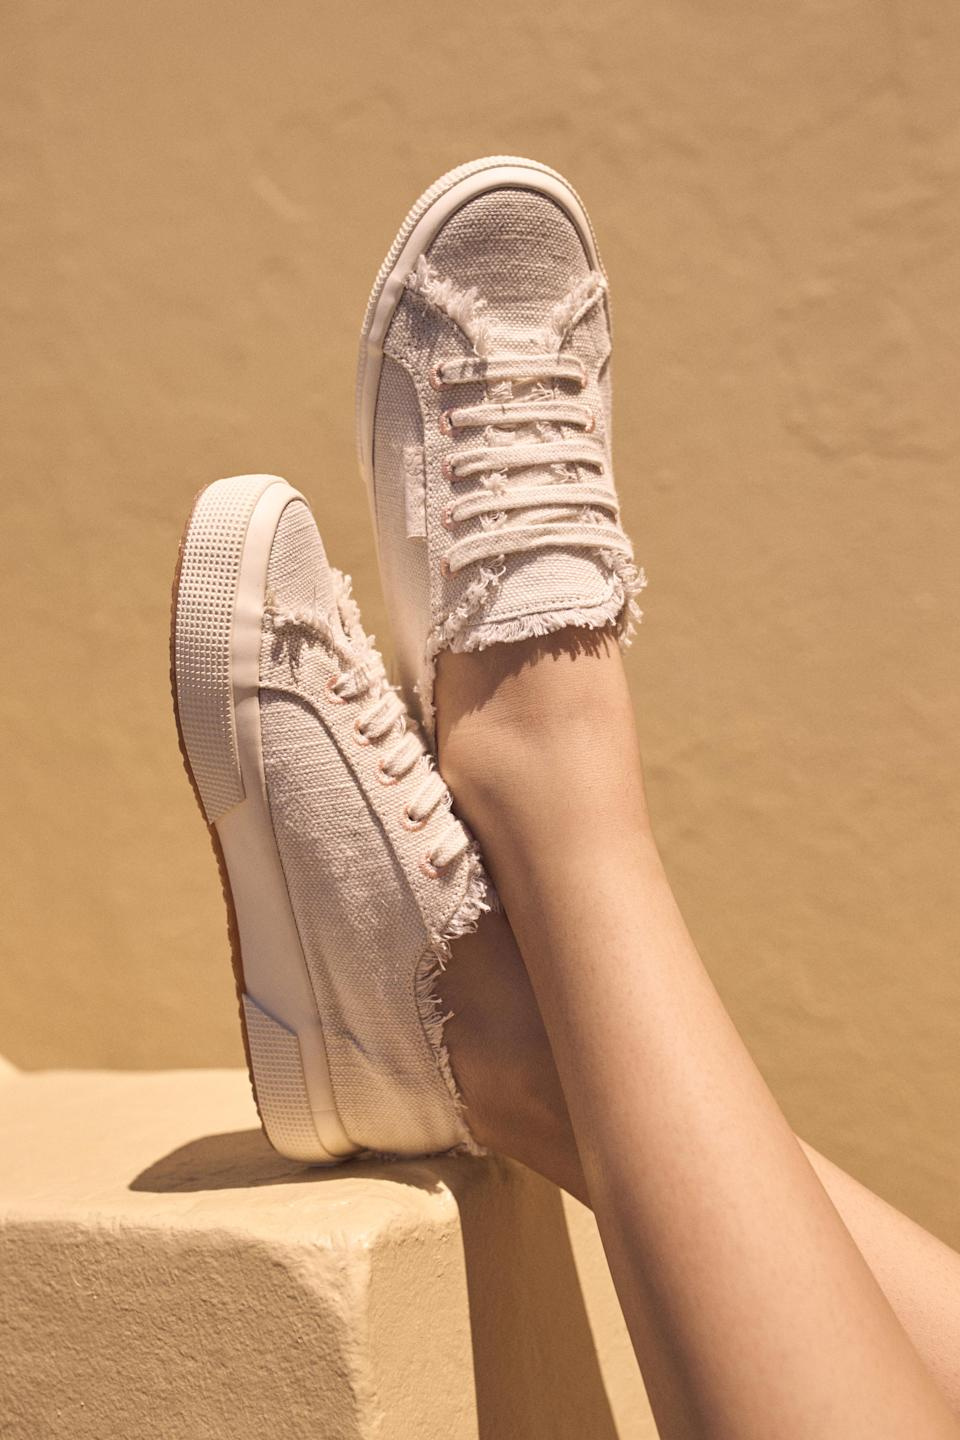 Superga x Aje Low Classic Style sneakers, $130. Photo: supplied.